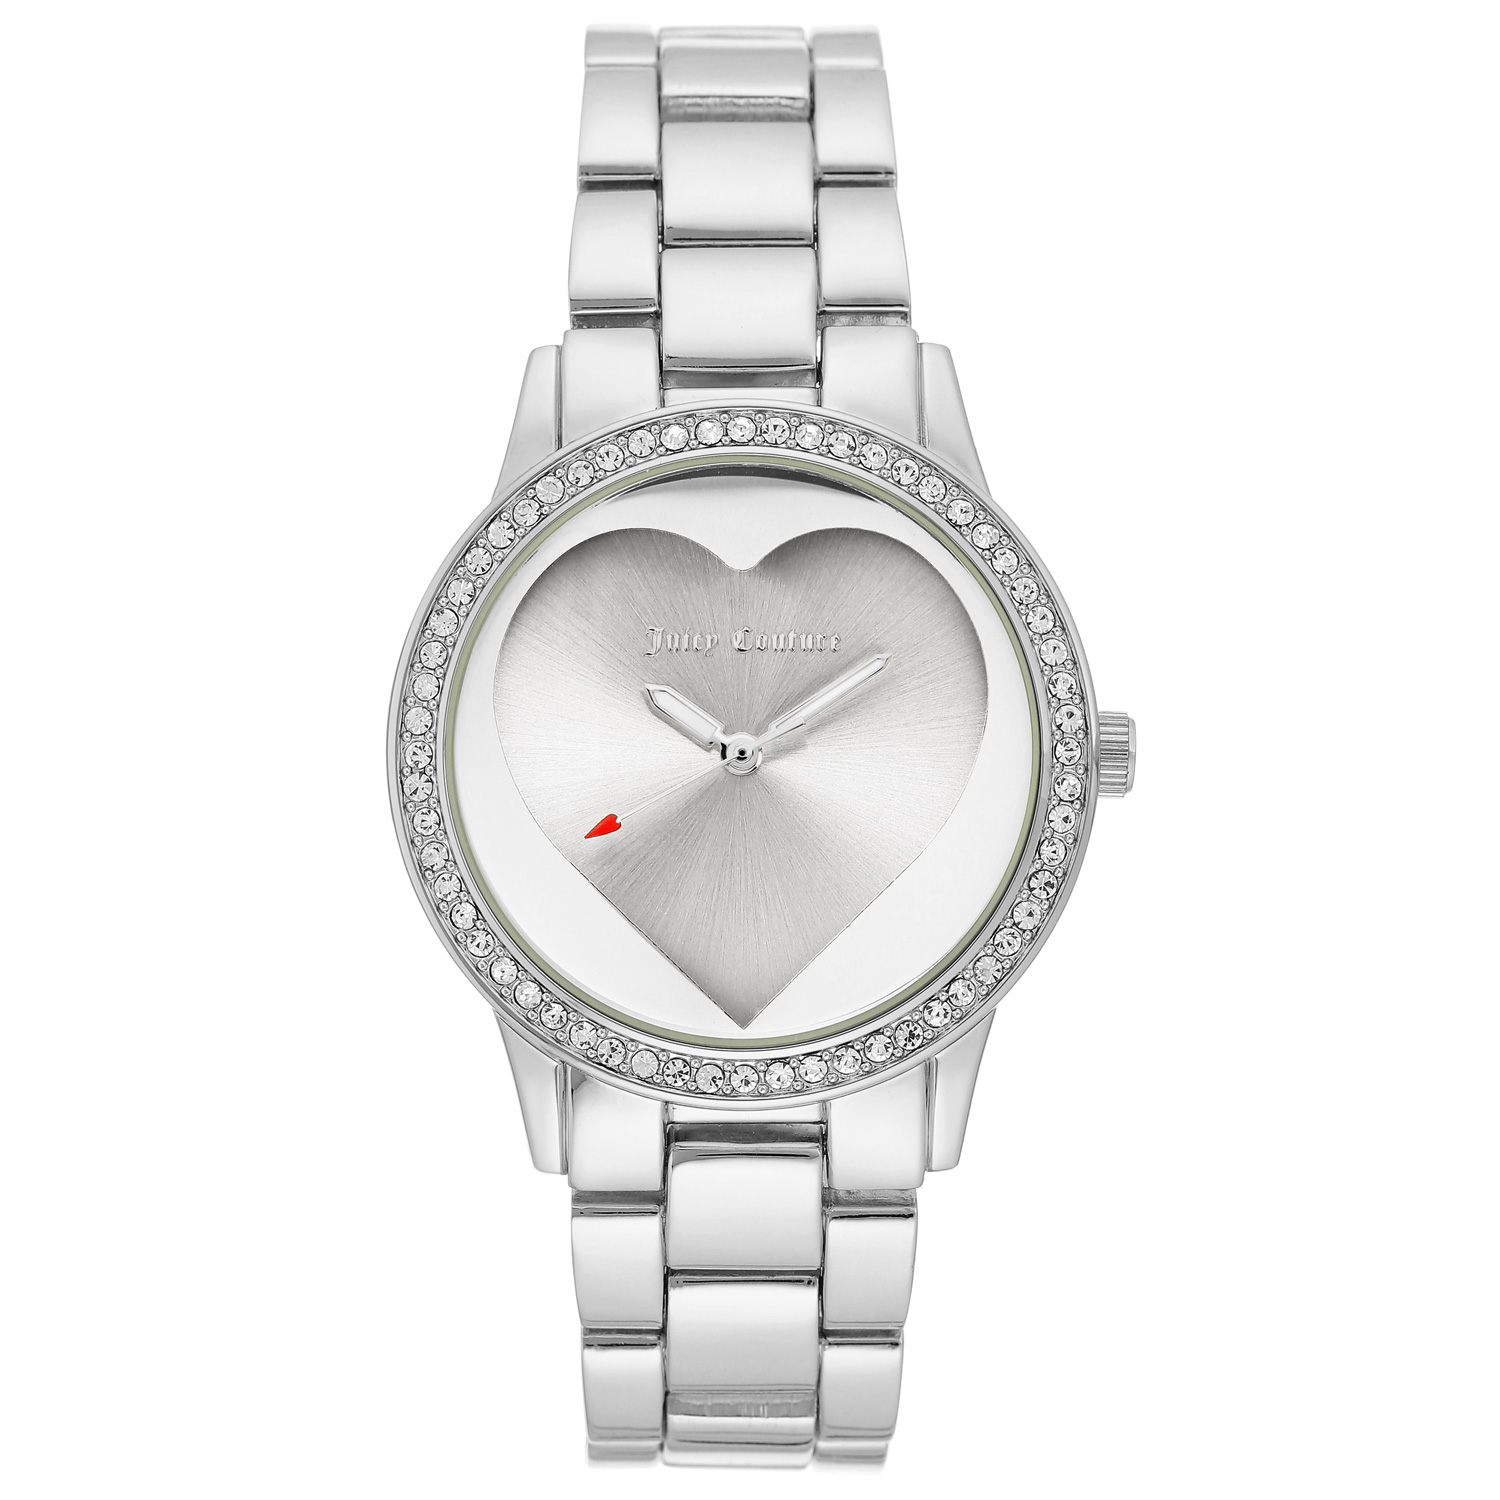 Juicy Couture Watch JC/1120SVSV Silver